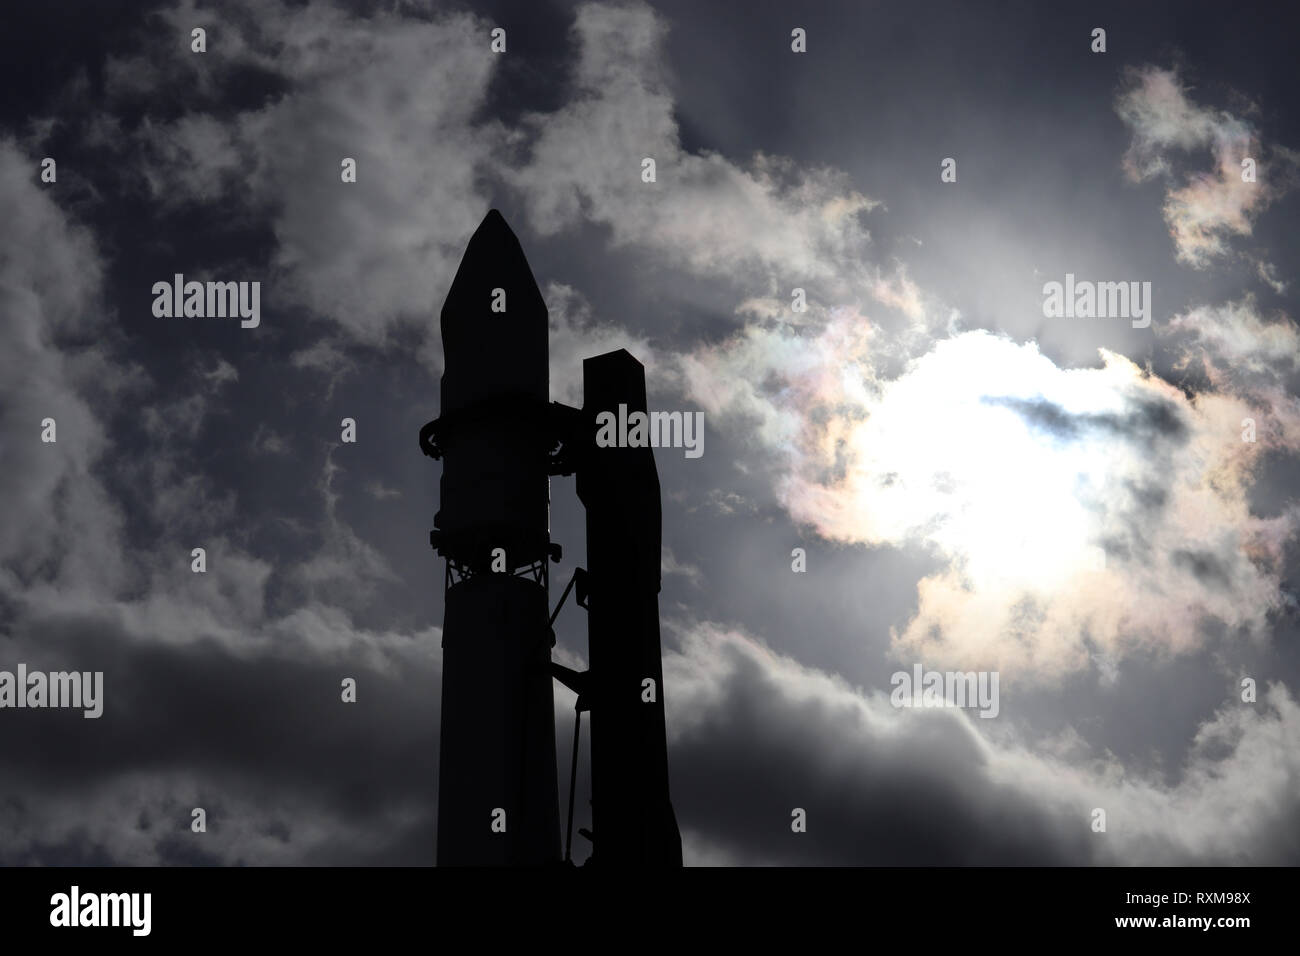 Space shuttle silhouette against the cloudy sky. Spaceship on the launch pad before starting, astronautics and cosmodrome concept - Stock Image